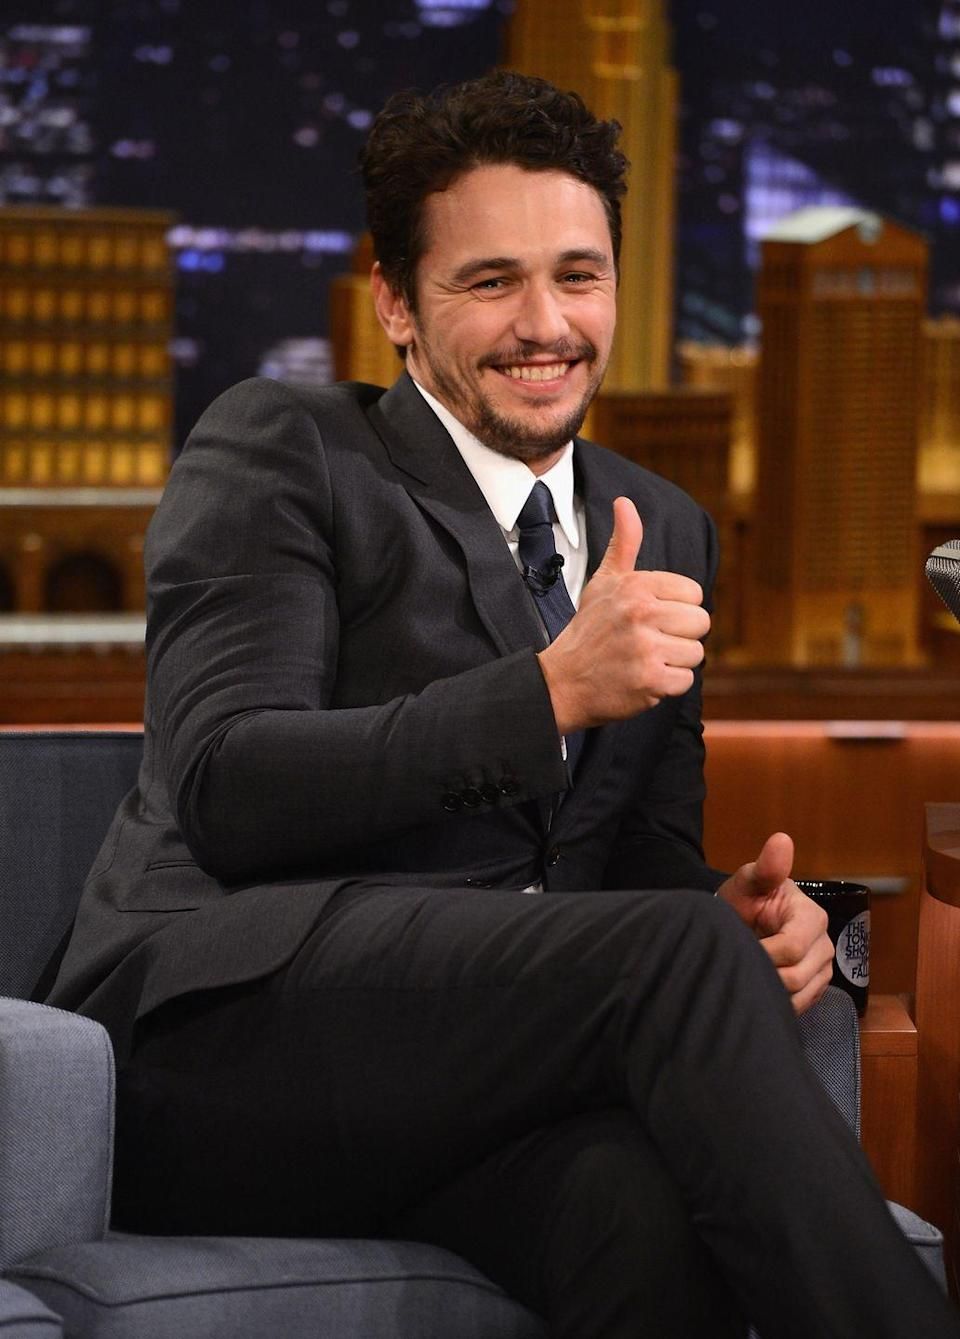 "<p>""<em>Your Highness</em>? That movie sucks,"" Franco told <em><a href=""http://www.etonline.com/news/134004_James_Franco_Covers_GQ_Comedy_Issue"" rel=""nofollow noopener"" target=""_blank"" data-ylk=""slk:GQ"" class=""link rapid-noclick-resp"">GQ</a></em> of the medieval parody. ""You can't get around that.""</p>"